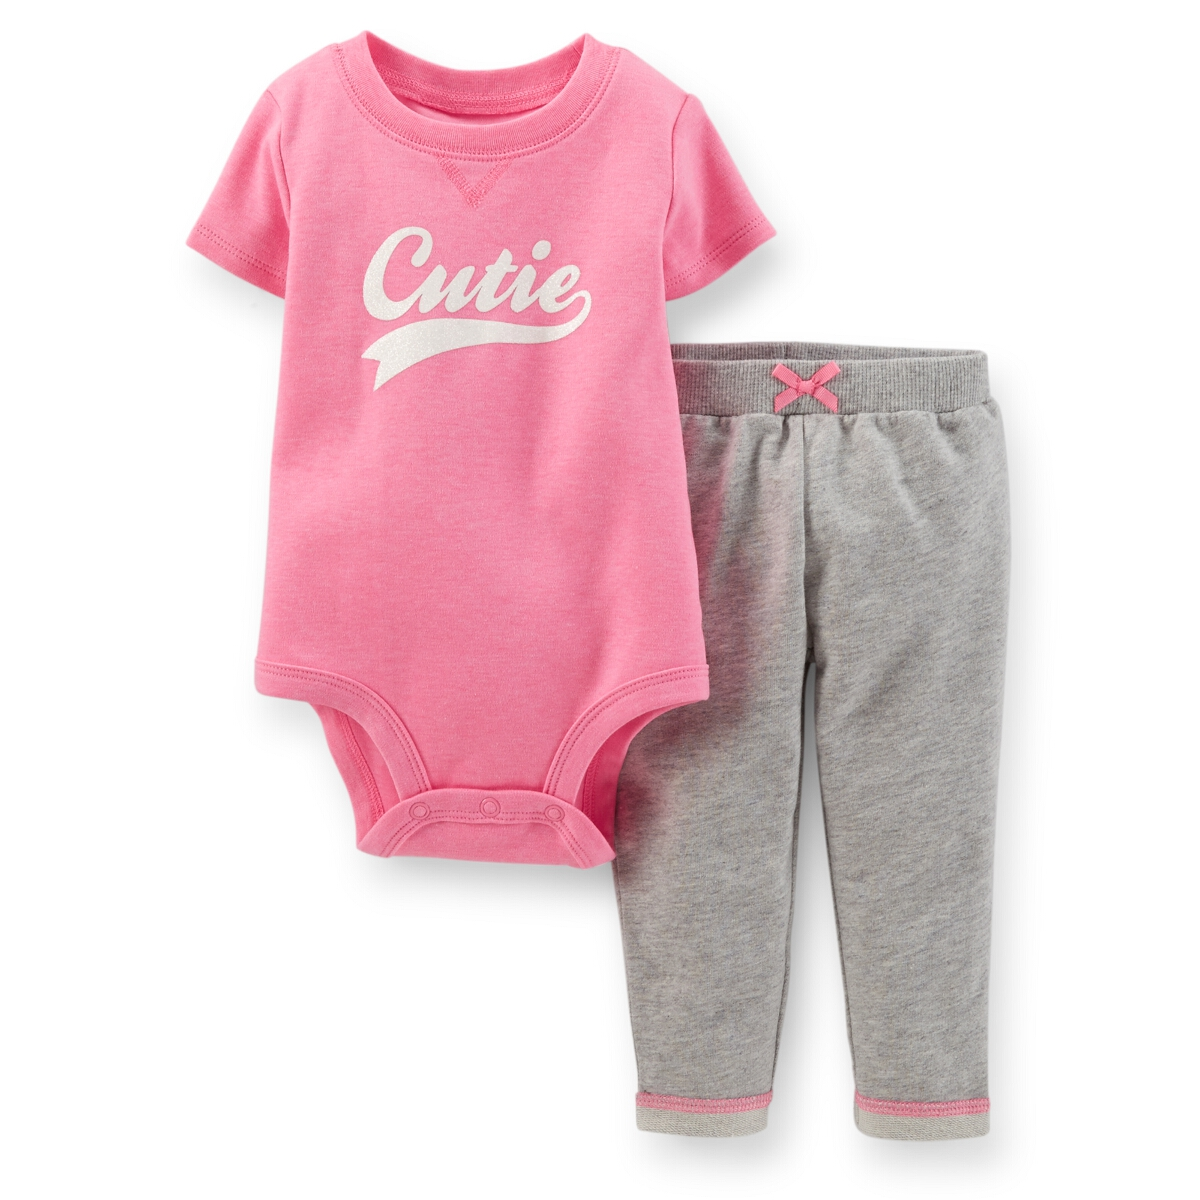 Carters Baby Clothing Outfit Girls 2 Piece Bodysuit